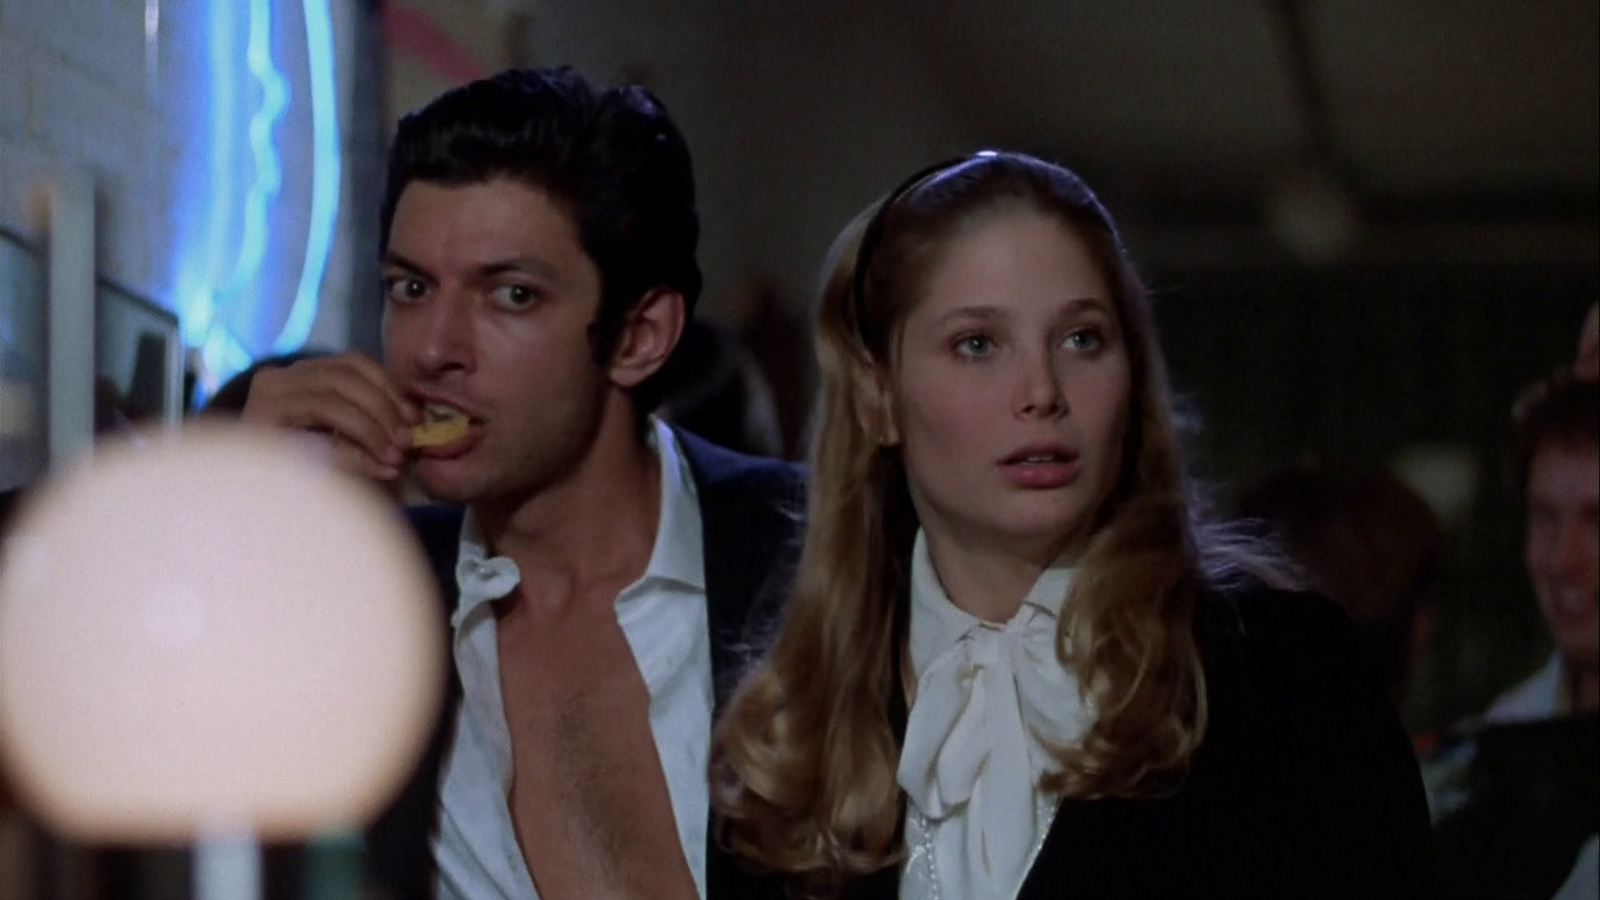 deborah-raffin-and-jeff-goldblum-the-sentinel-1977-hd-image